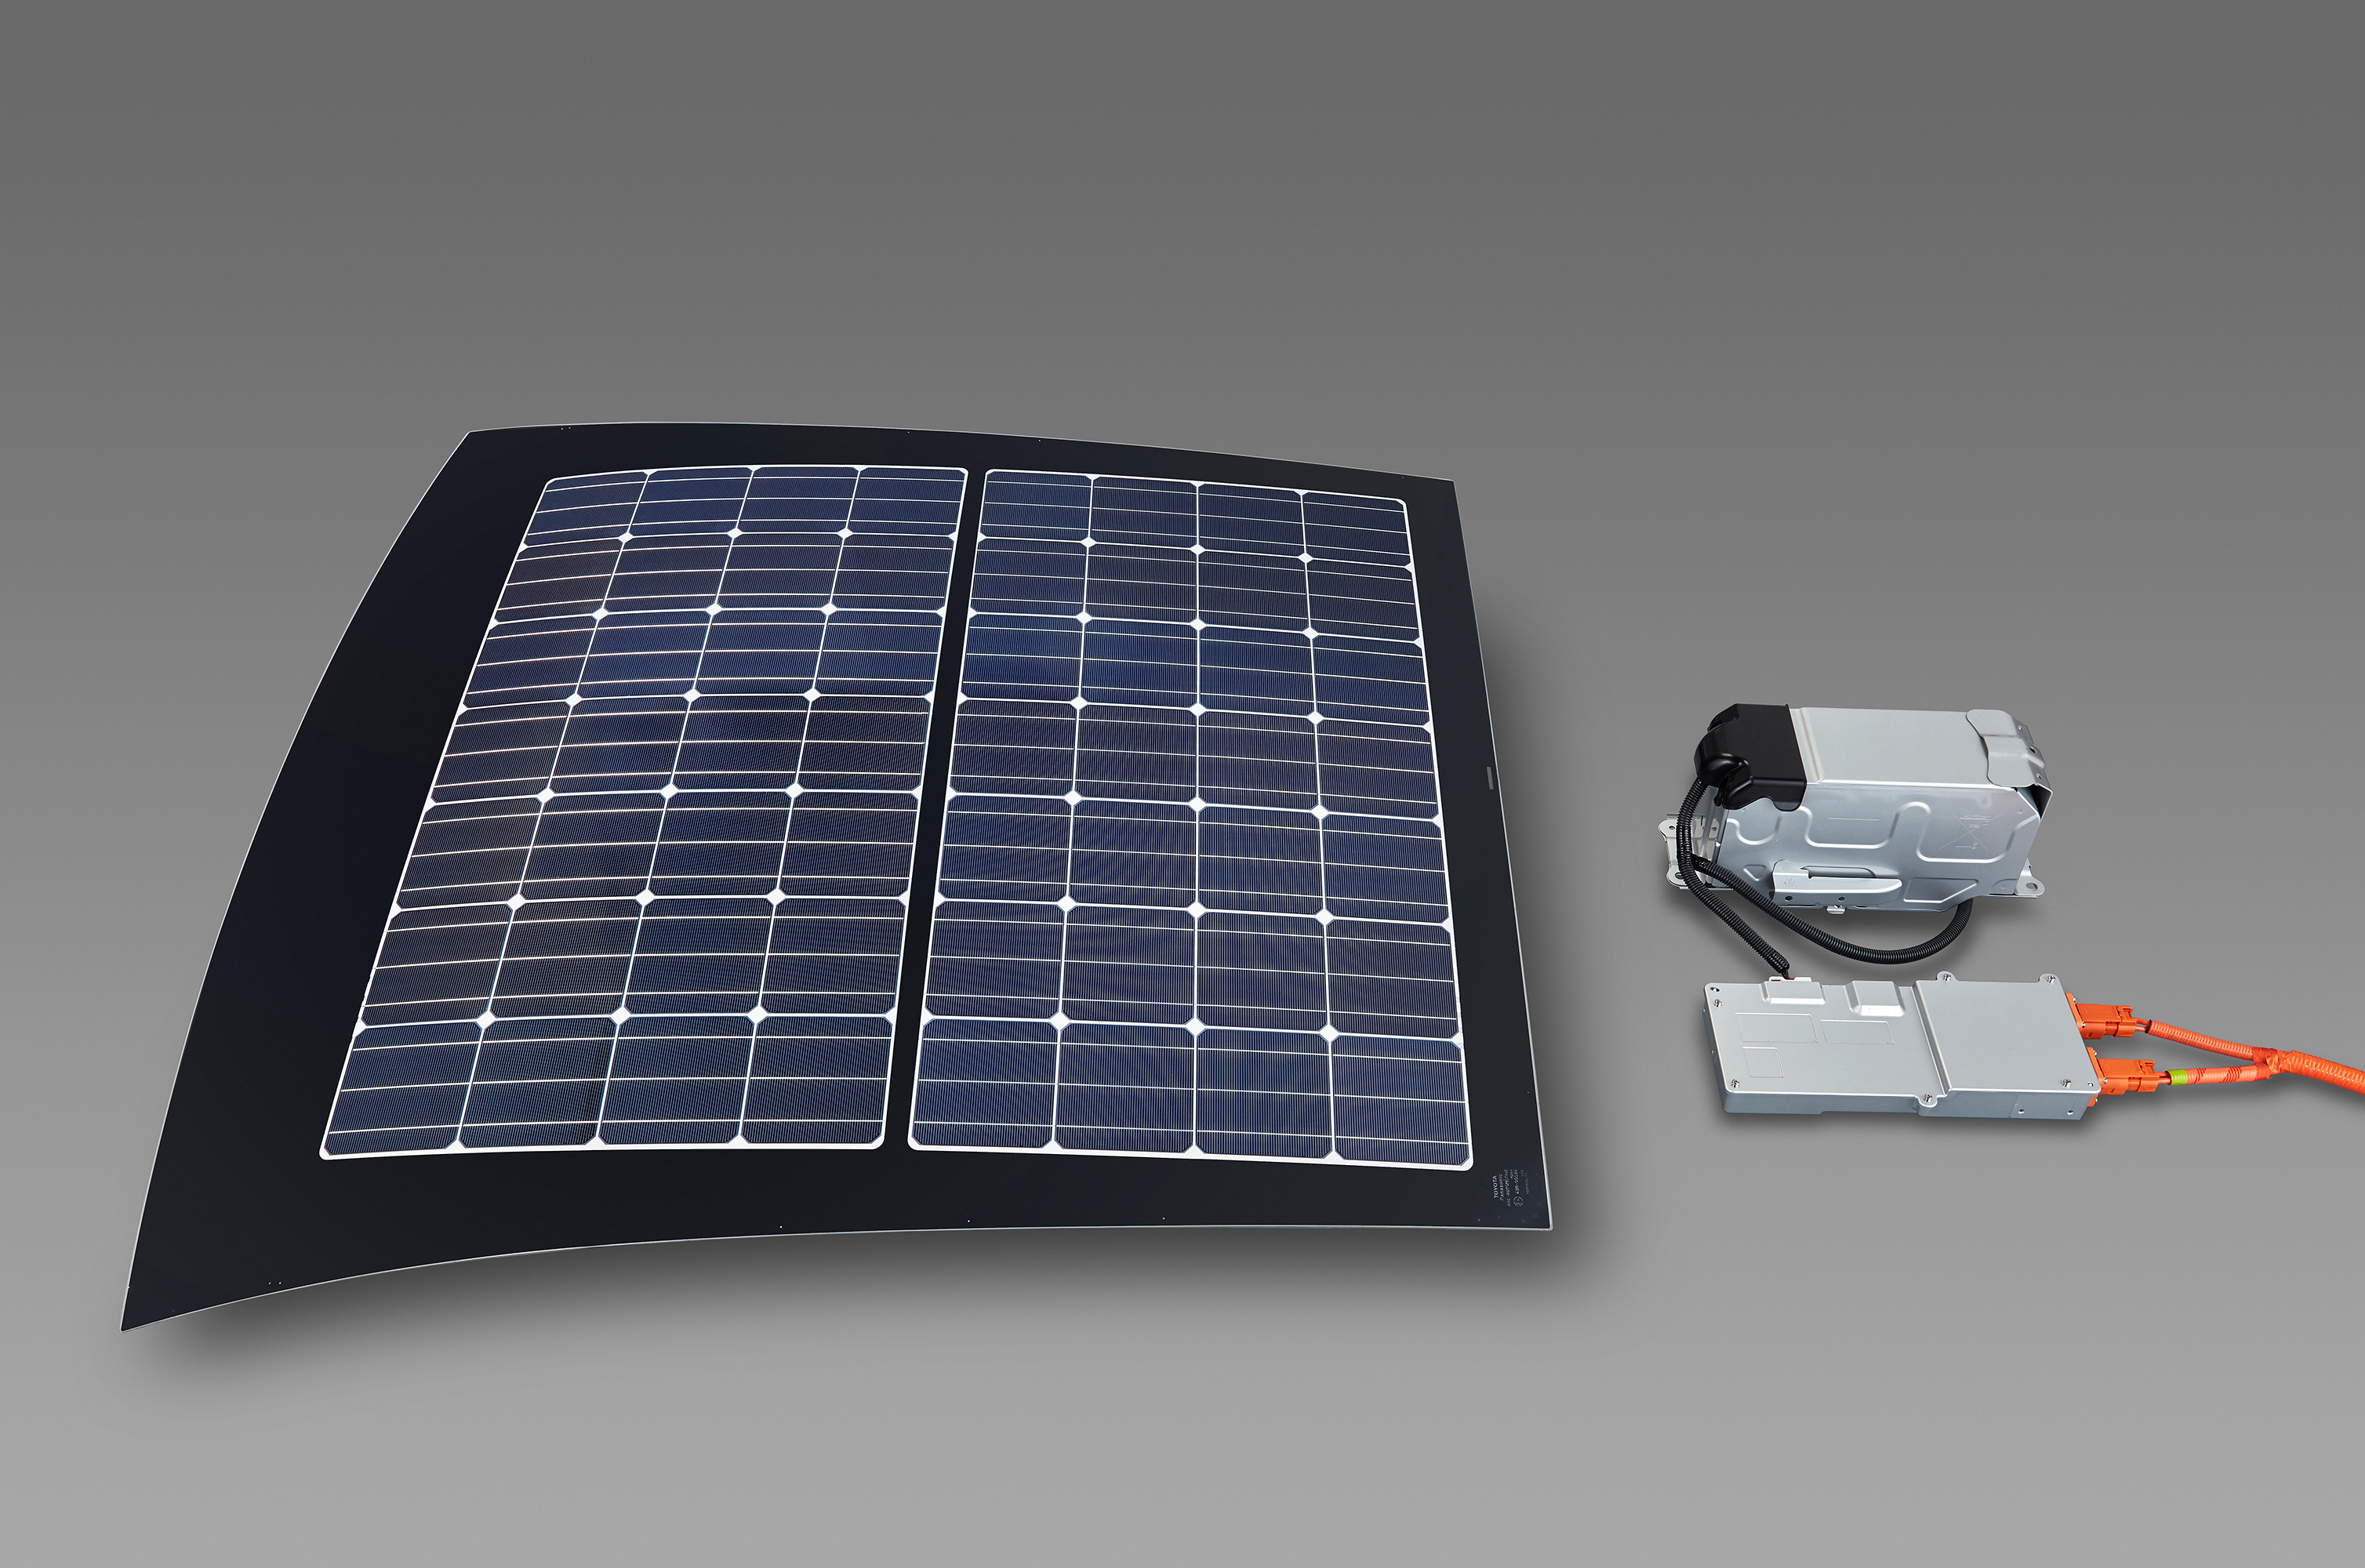 New Wrinkle For Roof Repairs Panasonic Photovoltaic Roof